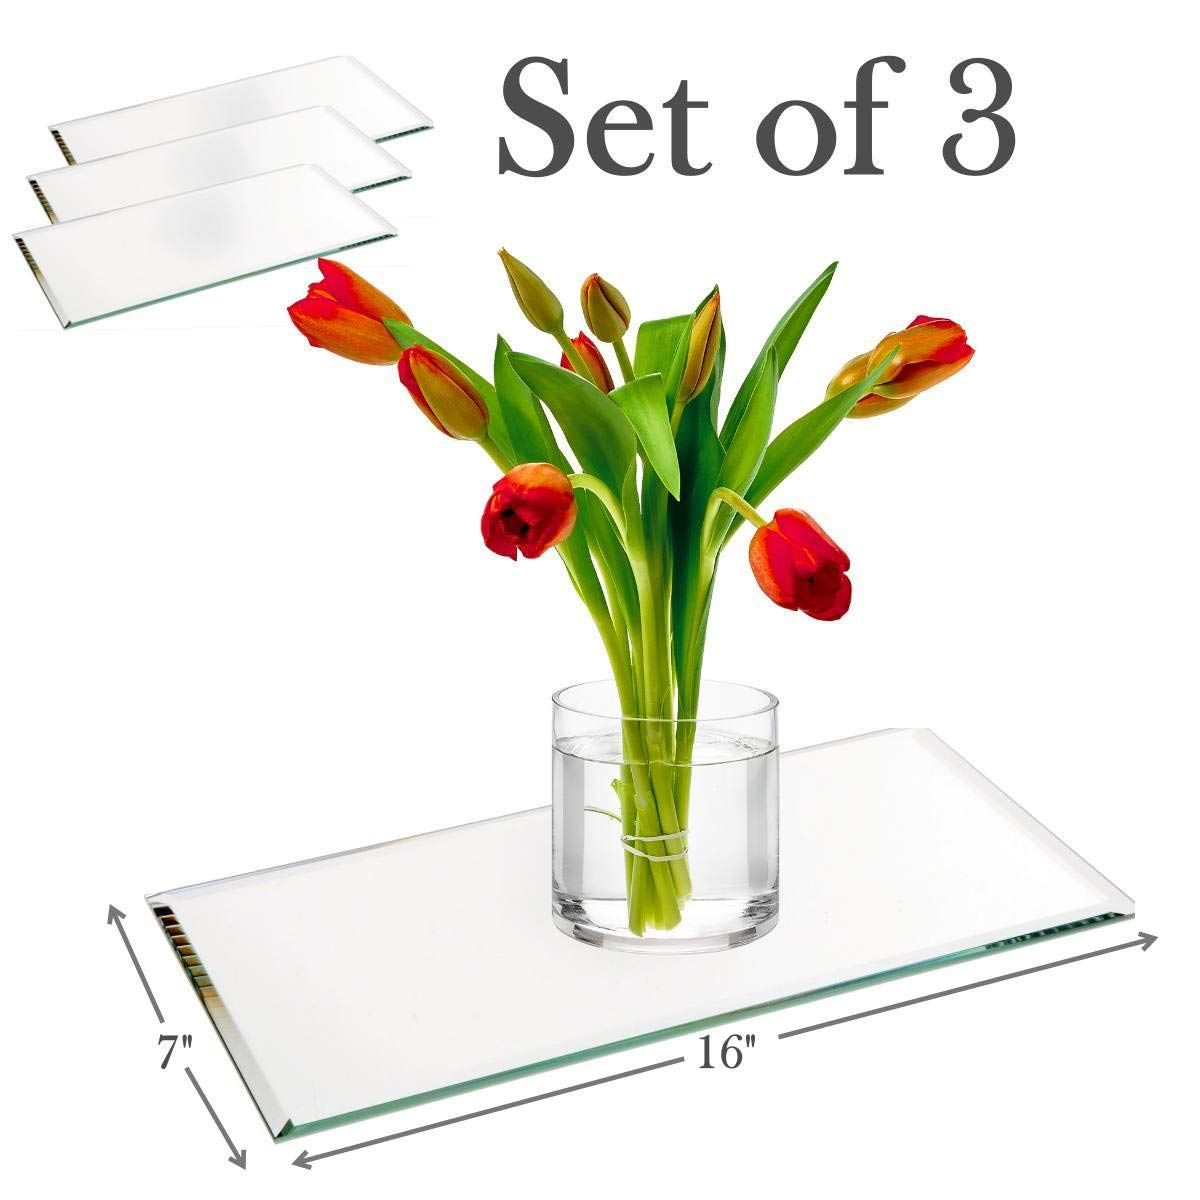 7''x16'' Rectangle Mirror Plate with Bevel Edge Set of 3 - Glass Mirror Tray, Base for Wedding Centerpieces, Candles and Wall Decor by PARNOO